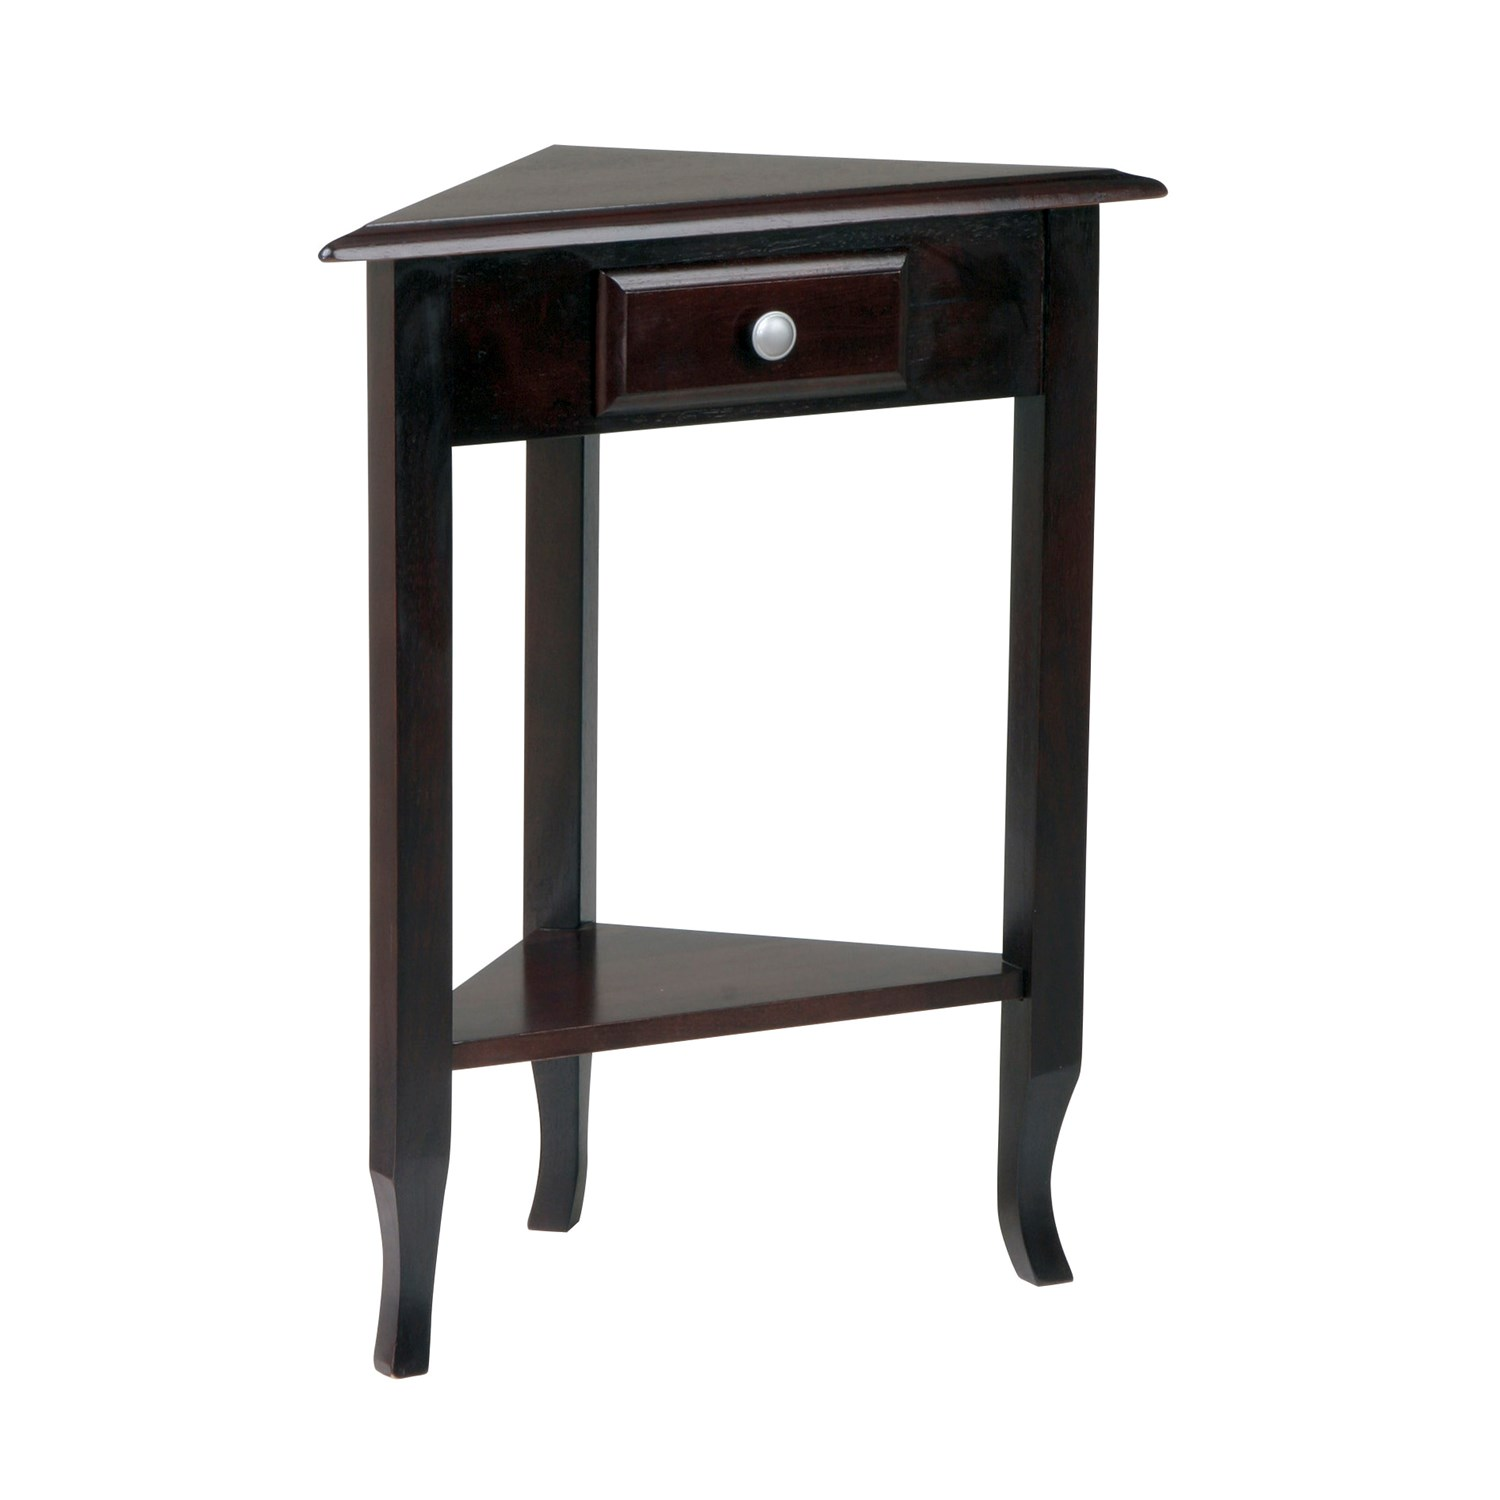 office star products merlot corner accent table white round drop leaf and chairs very small pottery barn teen floor lamp little black side metal tables for living room rattan